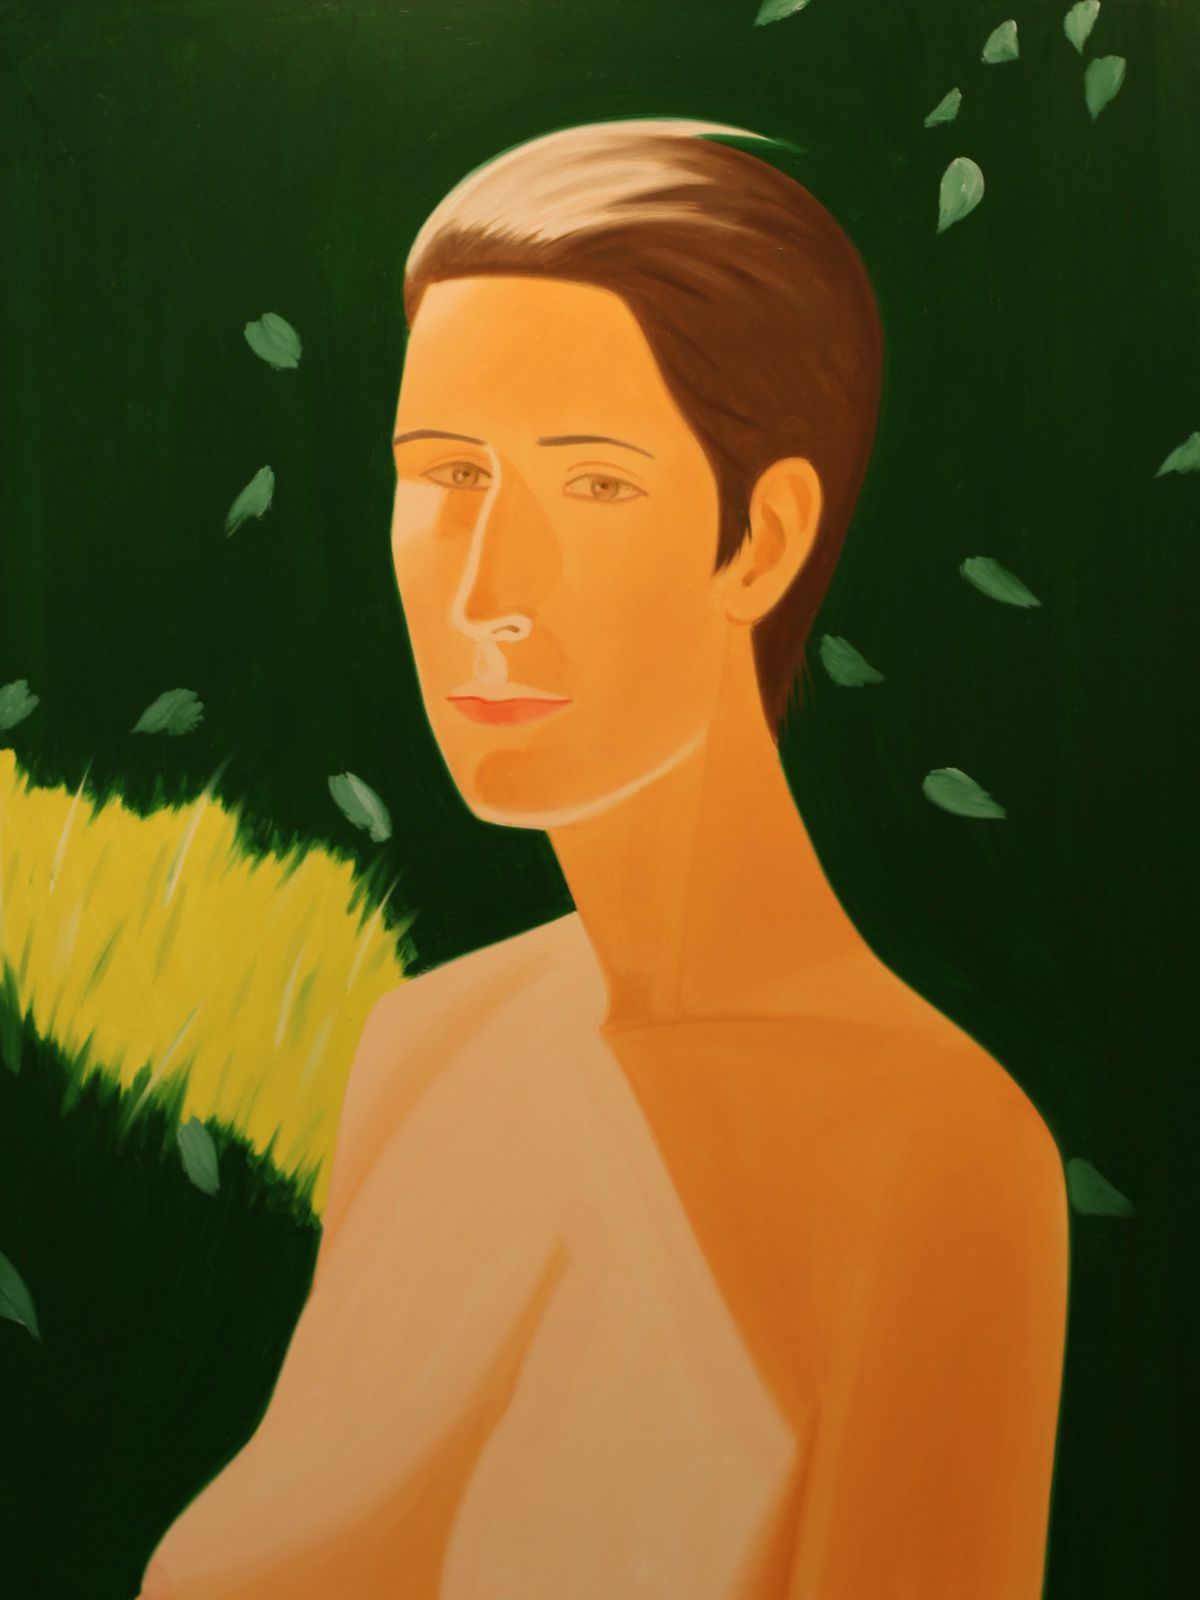 """Sandra 2"", 1986 d'Alex KATZ - Courtesy Galerie ROPAC @ © Photo Éric Simon"